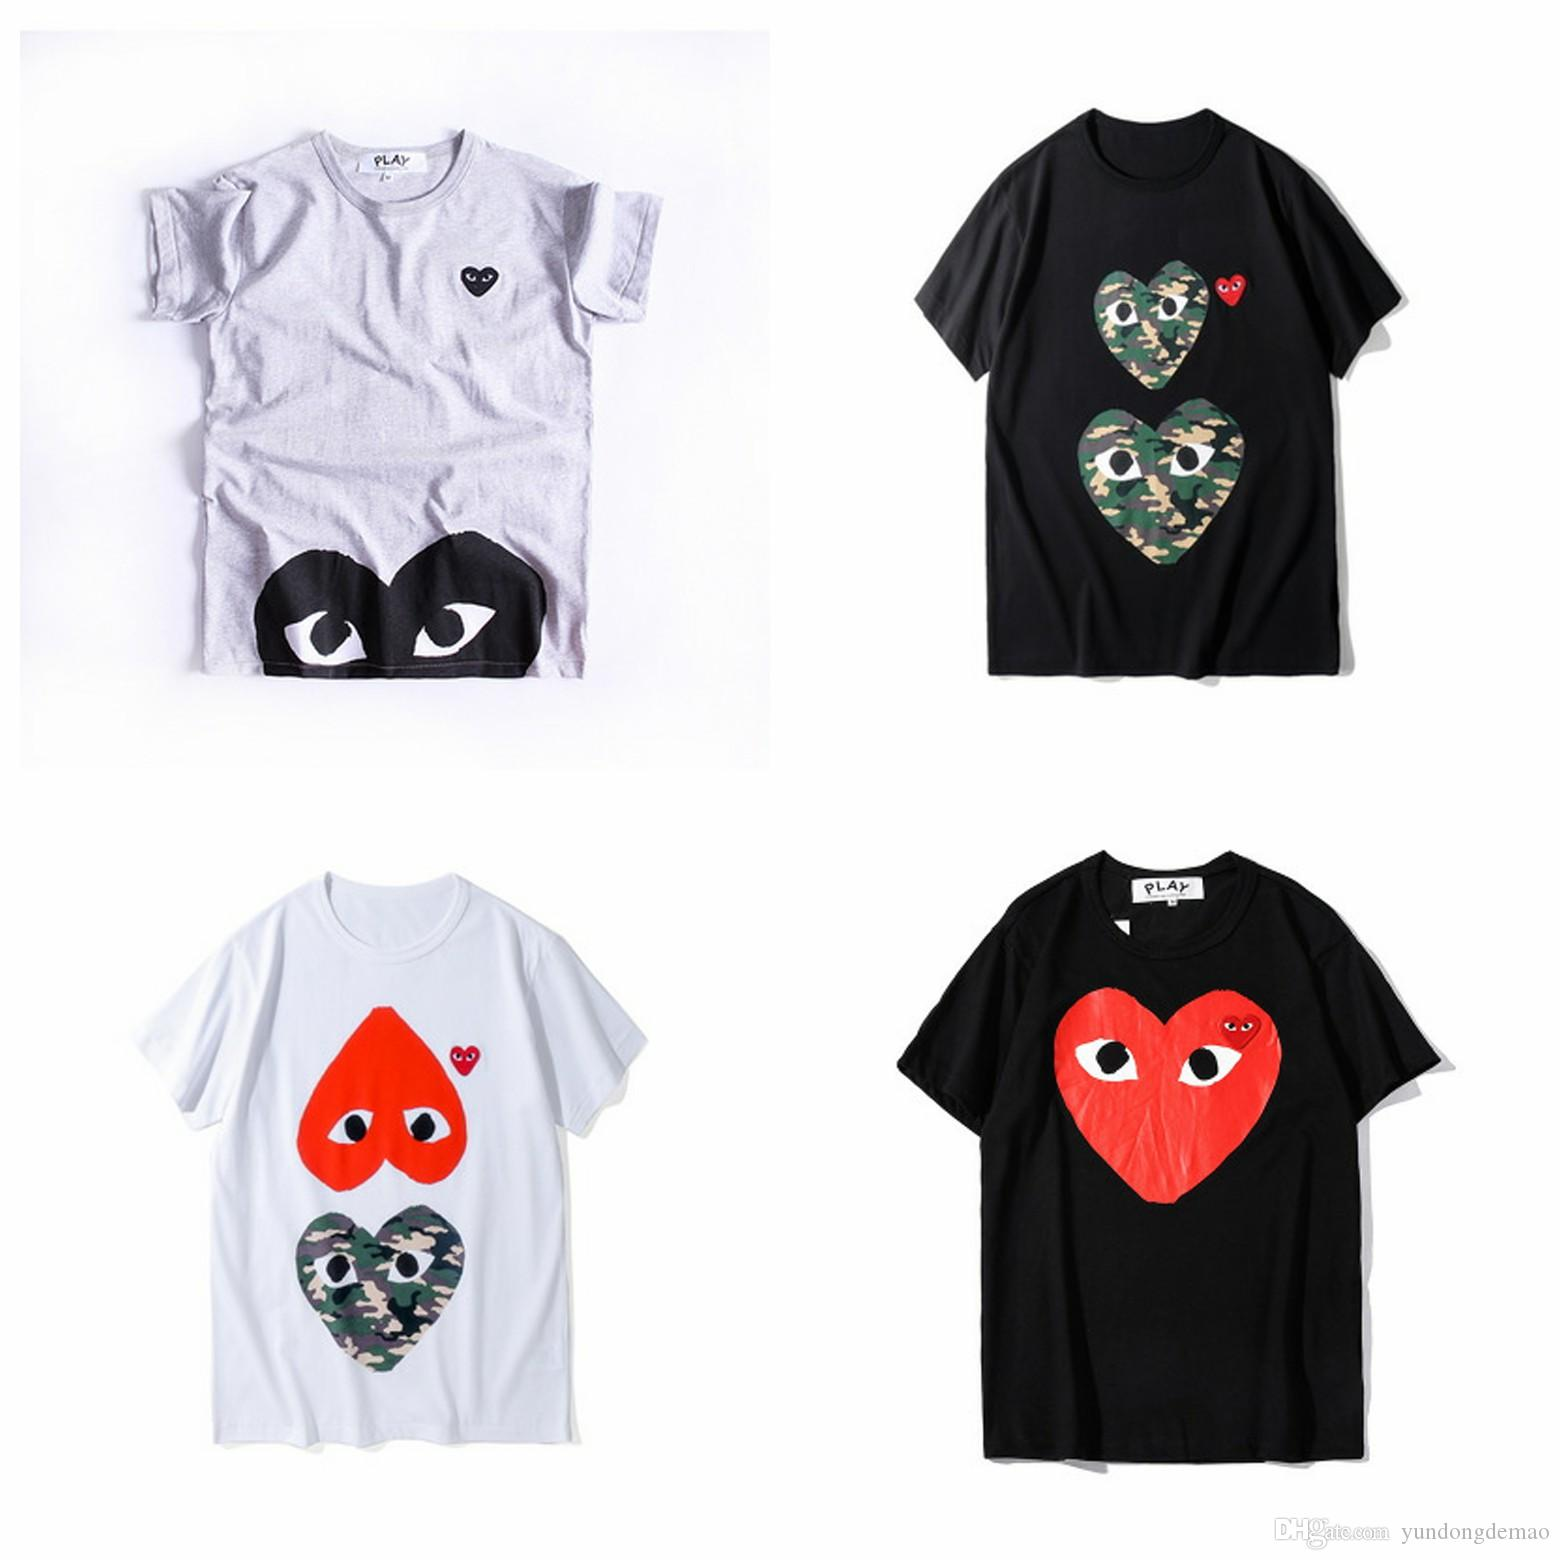 Lover New Arrive COM Best Quality CDG Classic TEE brand new Black Men Play T-shirt White Short Sleeve Tops C005 Men's Japan Brand